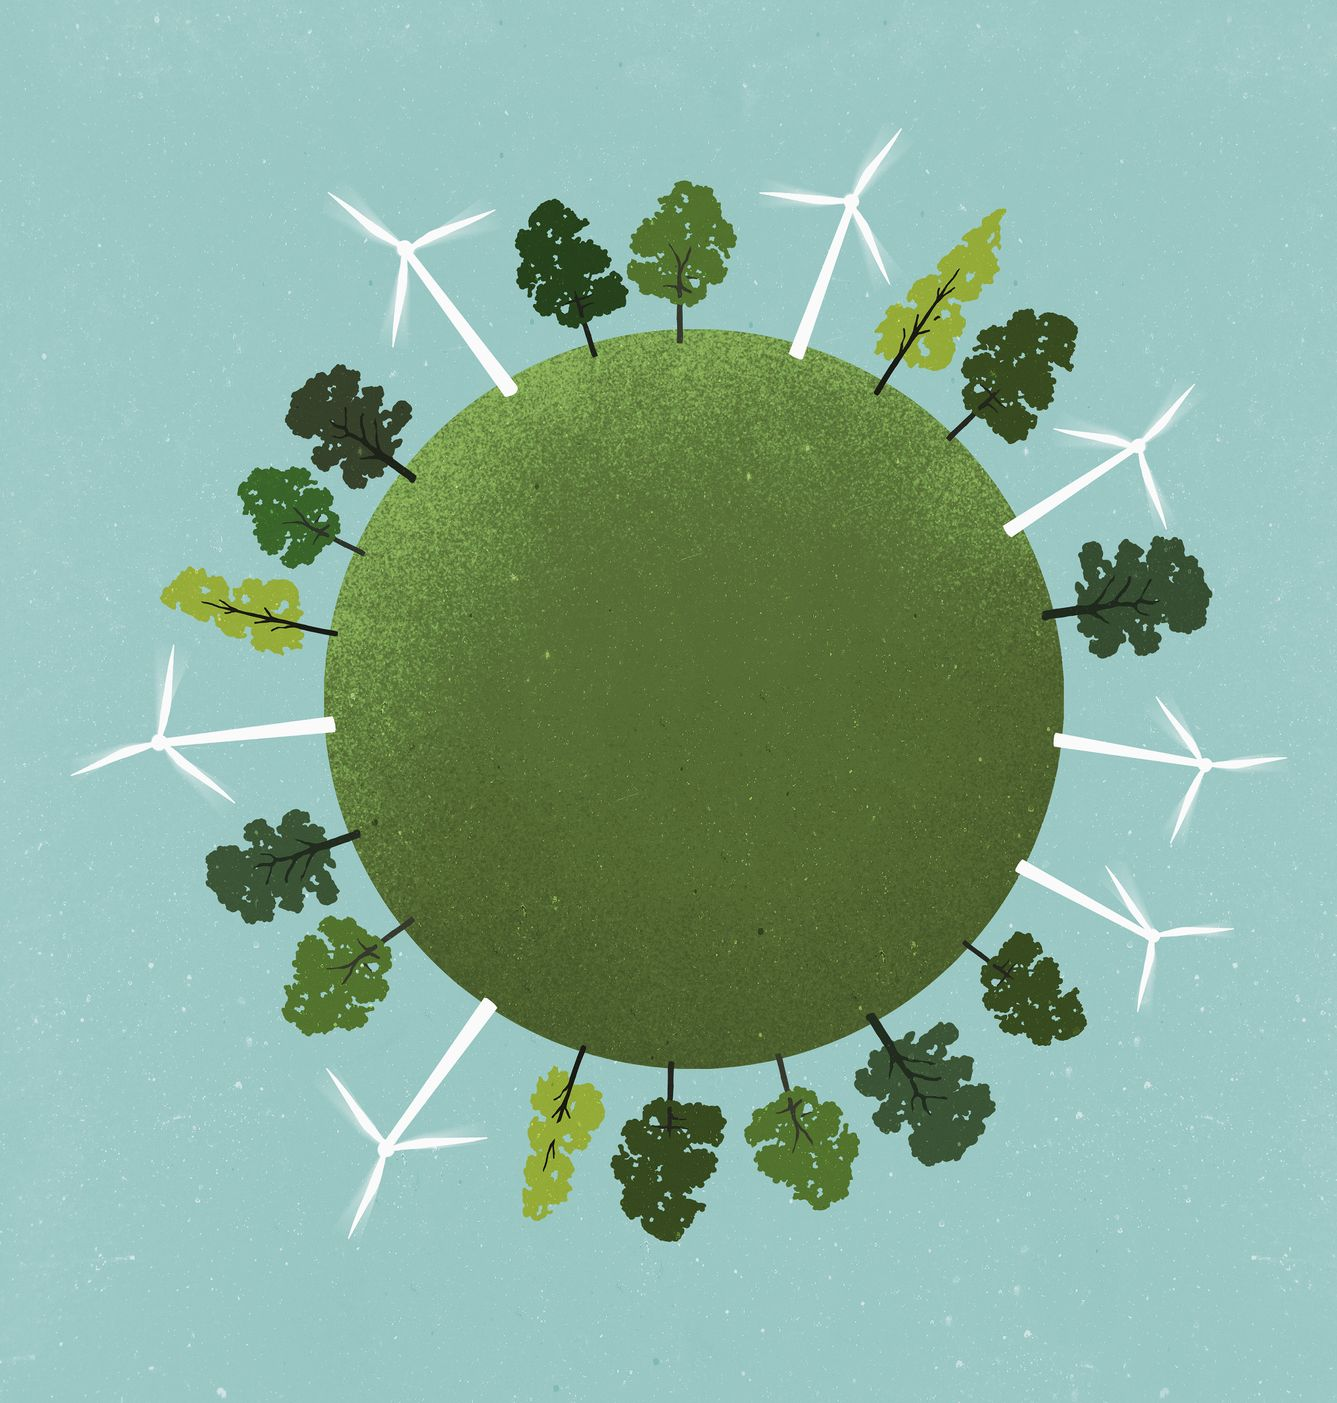 little planet image of windmills and trees on field against sky